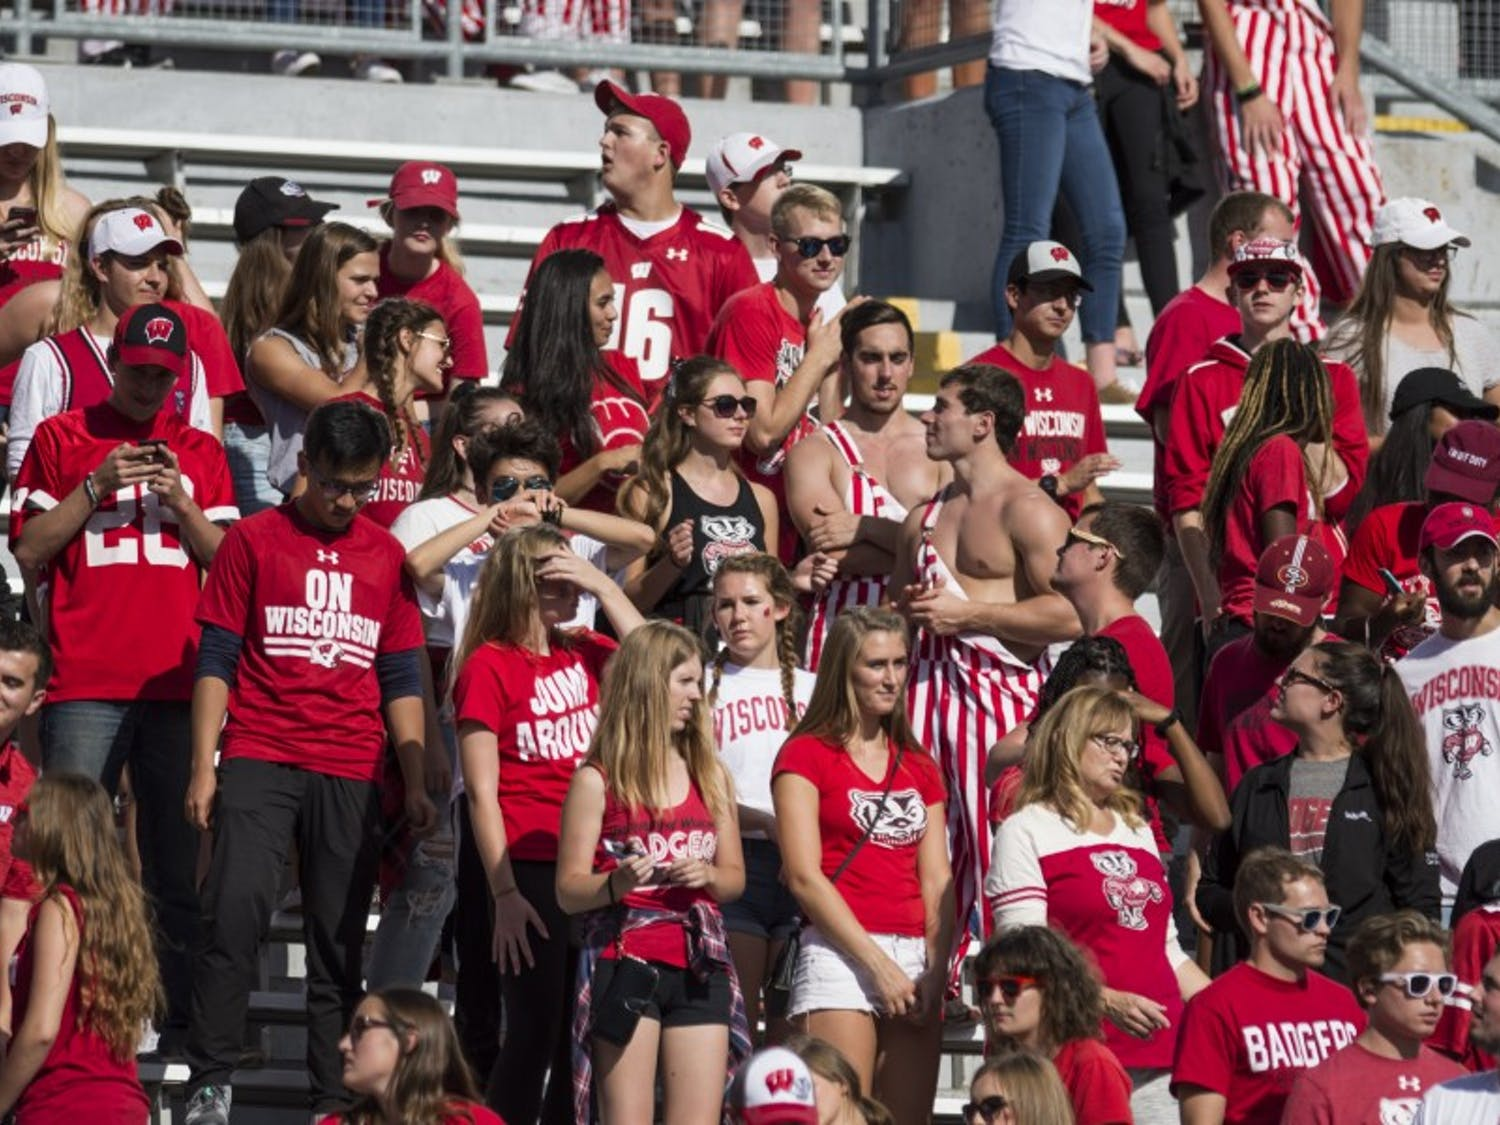 UW-Madison Athletic Director Barry Alvarez hopes to increase student section attendance at kickoff for Badger football games.